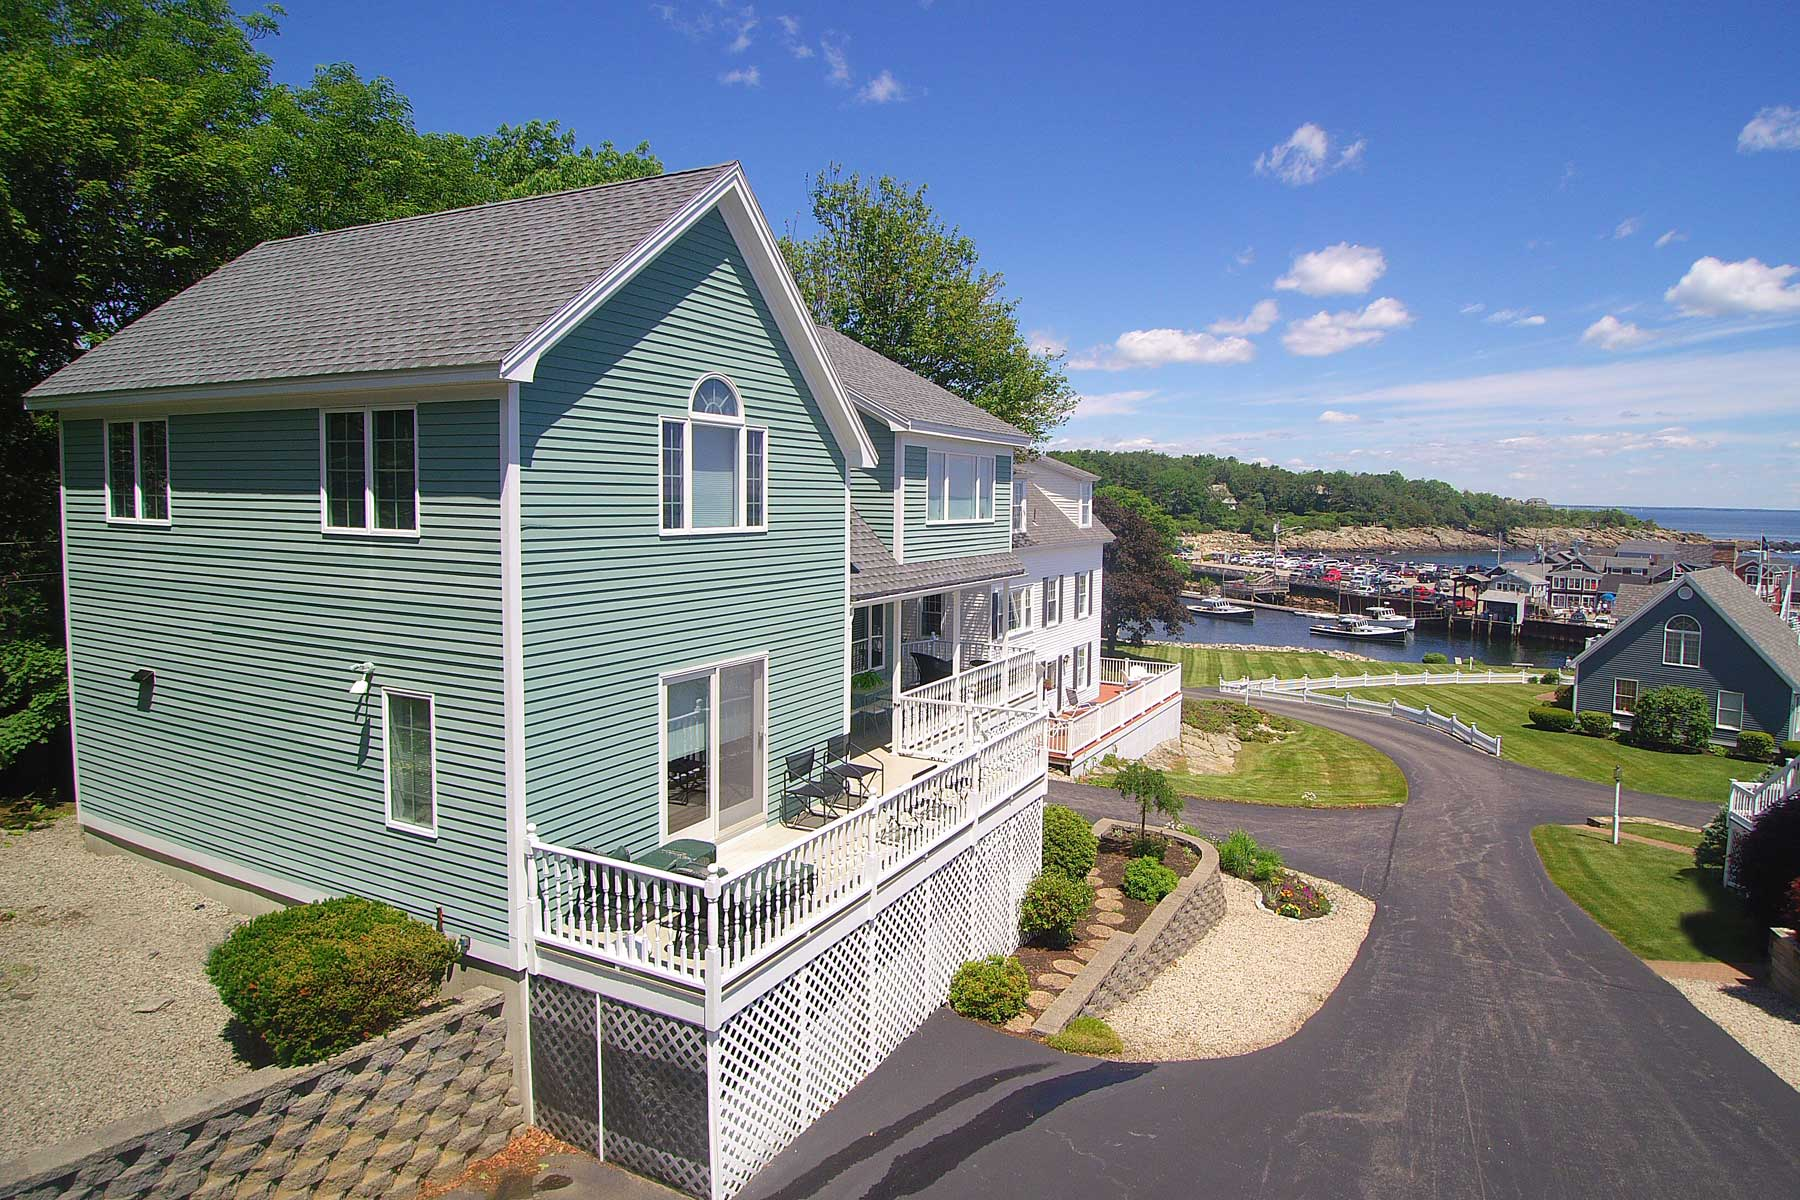 Single Family Home for Sale at Walk to Perkins Cove 47 Riverside Lane Ogunquit, Maine 03907 United States